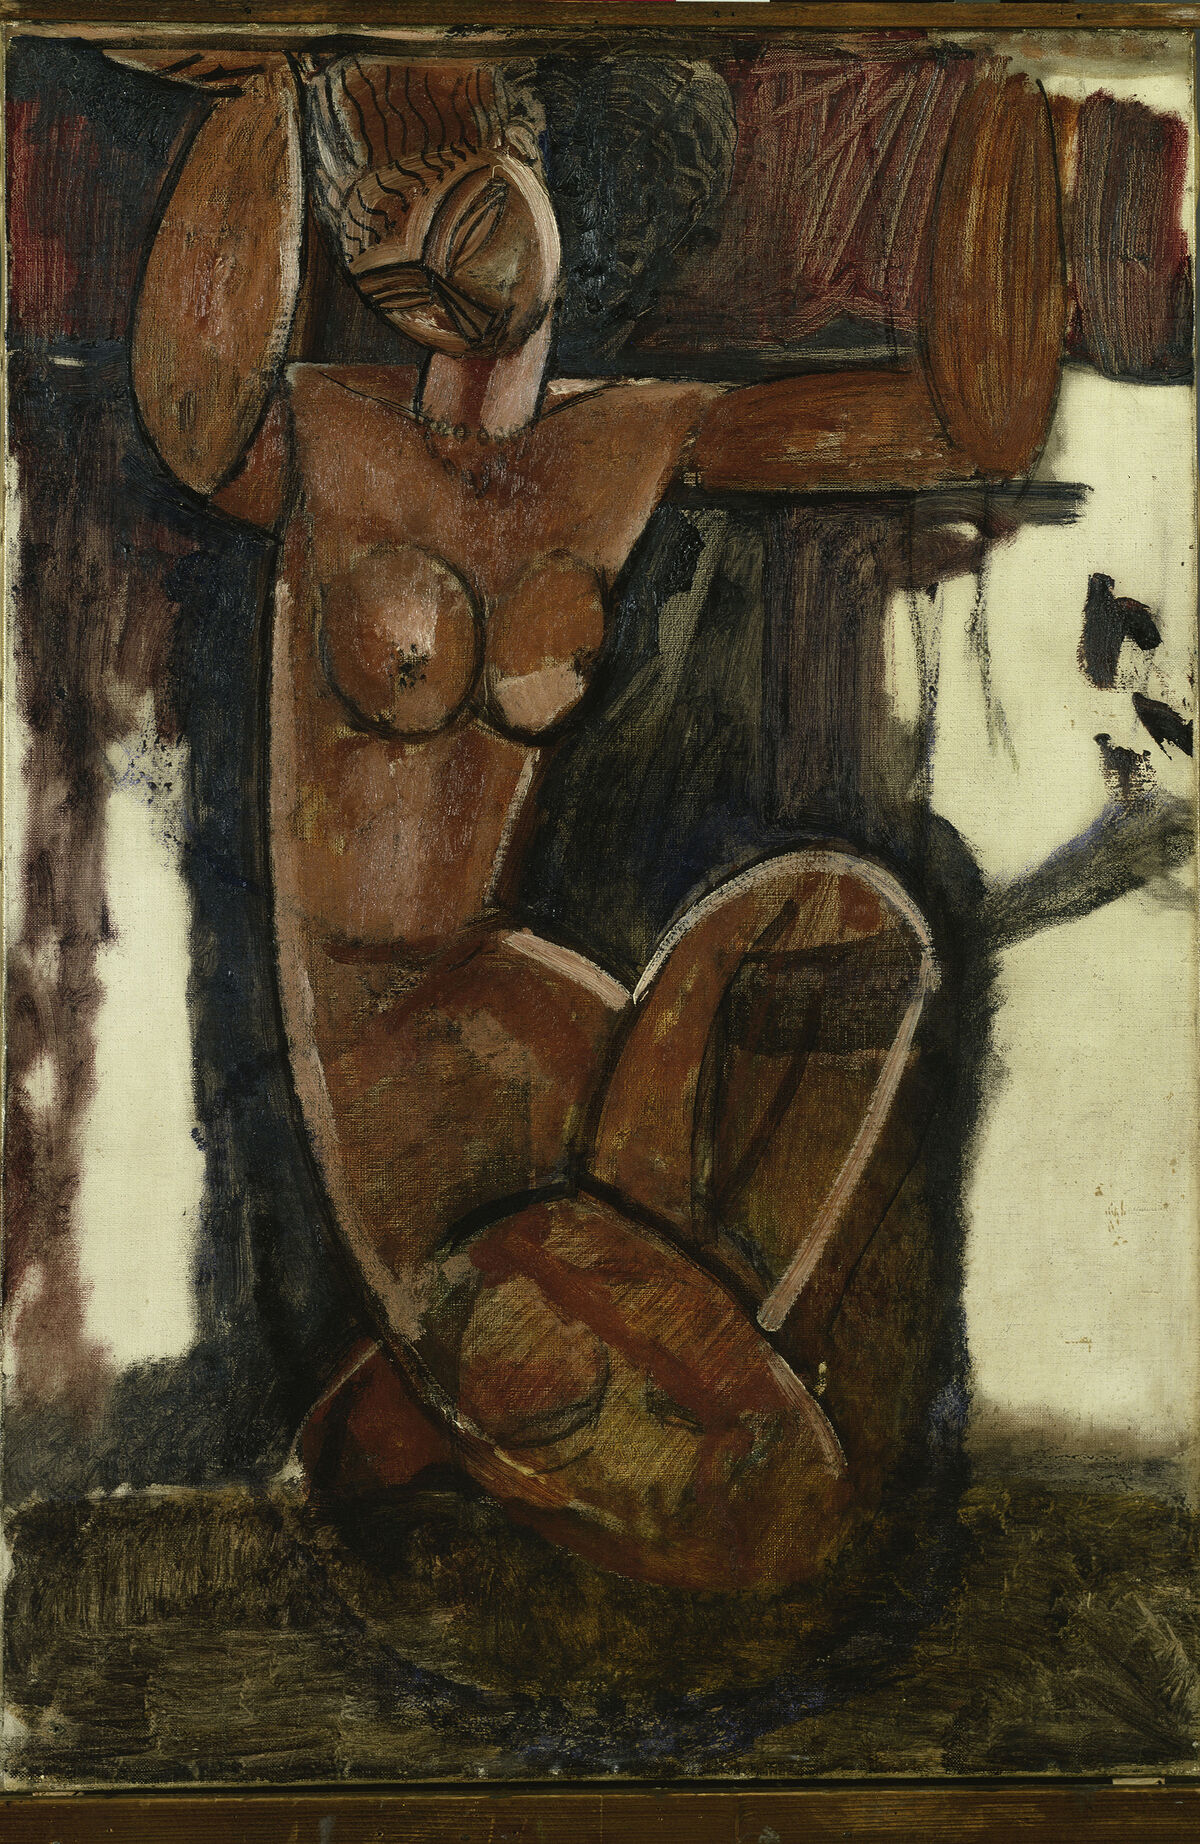 Amedeo Modigliani, Caryatid, c. 1911. Kunstsammlung Nordrhein-Westfalen, Dusseldorf. Courtesy of the Jewish Museum.